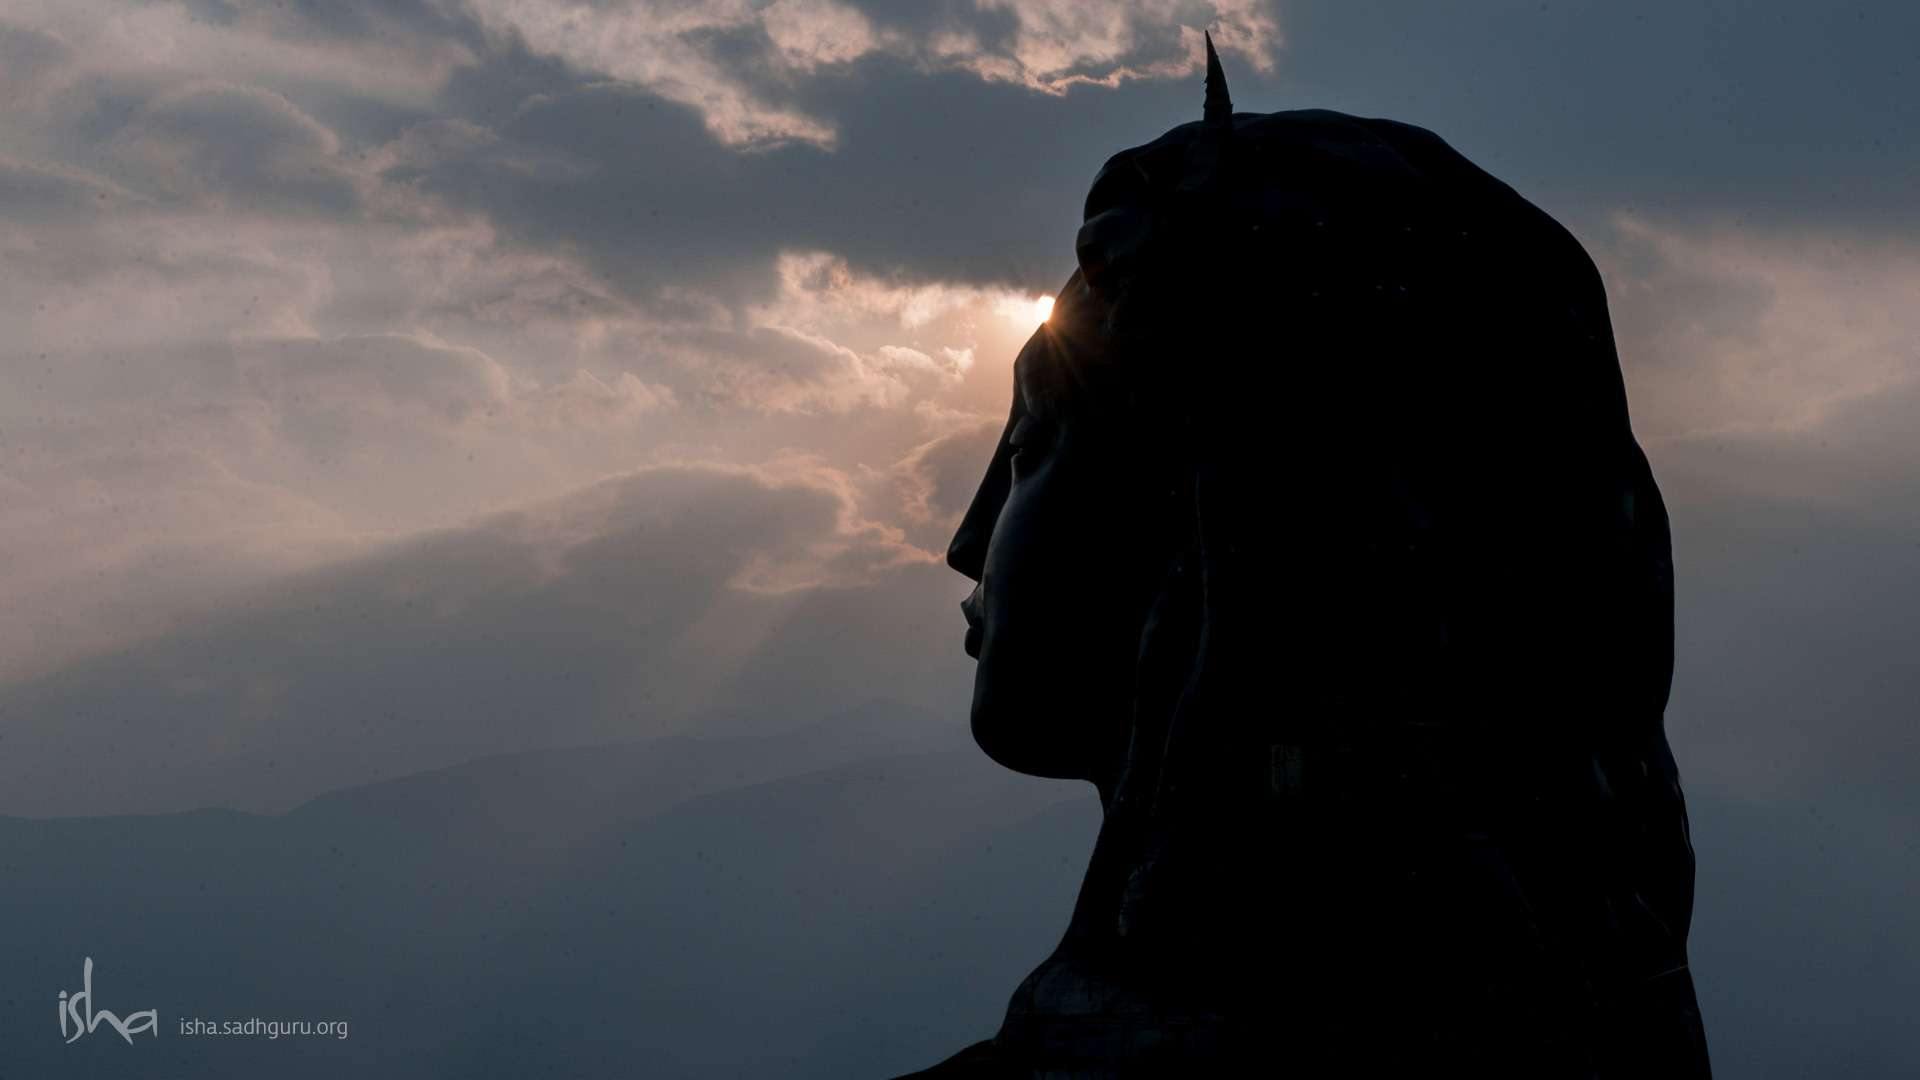 Wallpaper of Shiva - The Adiyogi with setting Sun